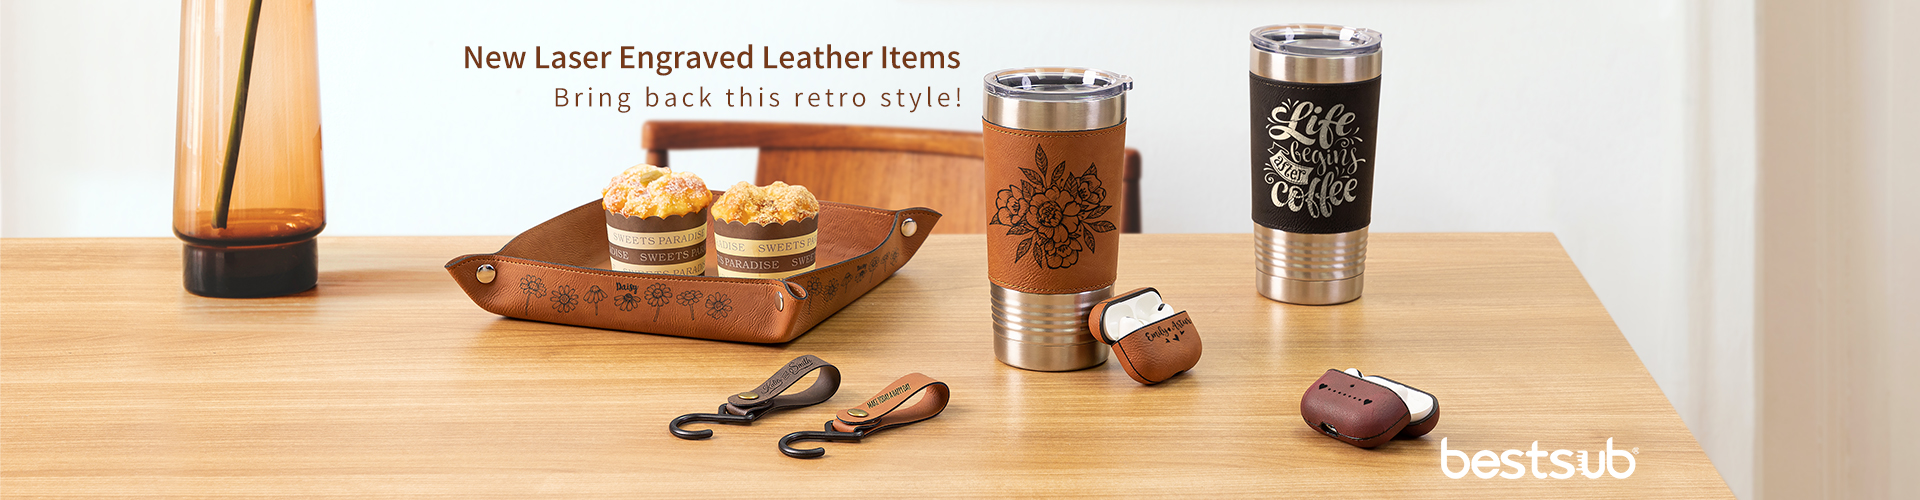 2021-06-22_New_Laser_Engraved_Leather_Items_new_web